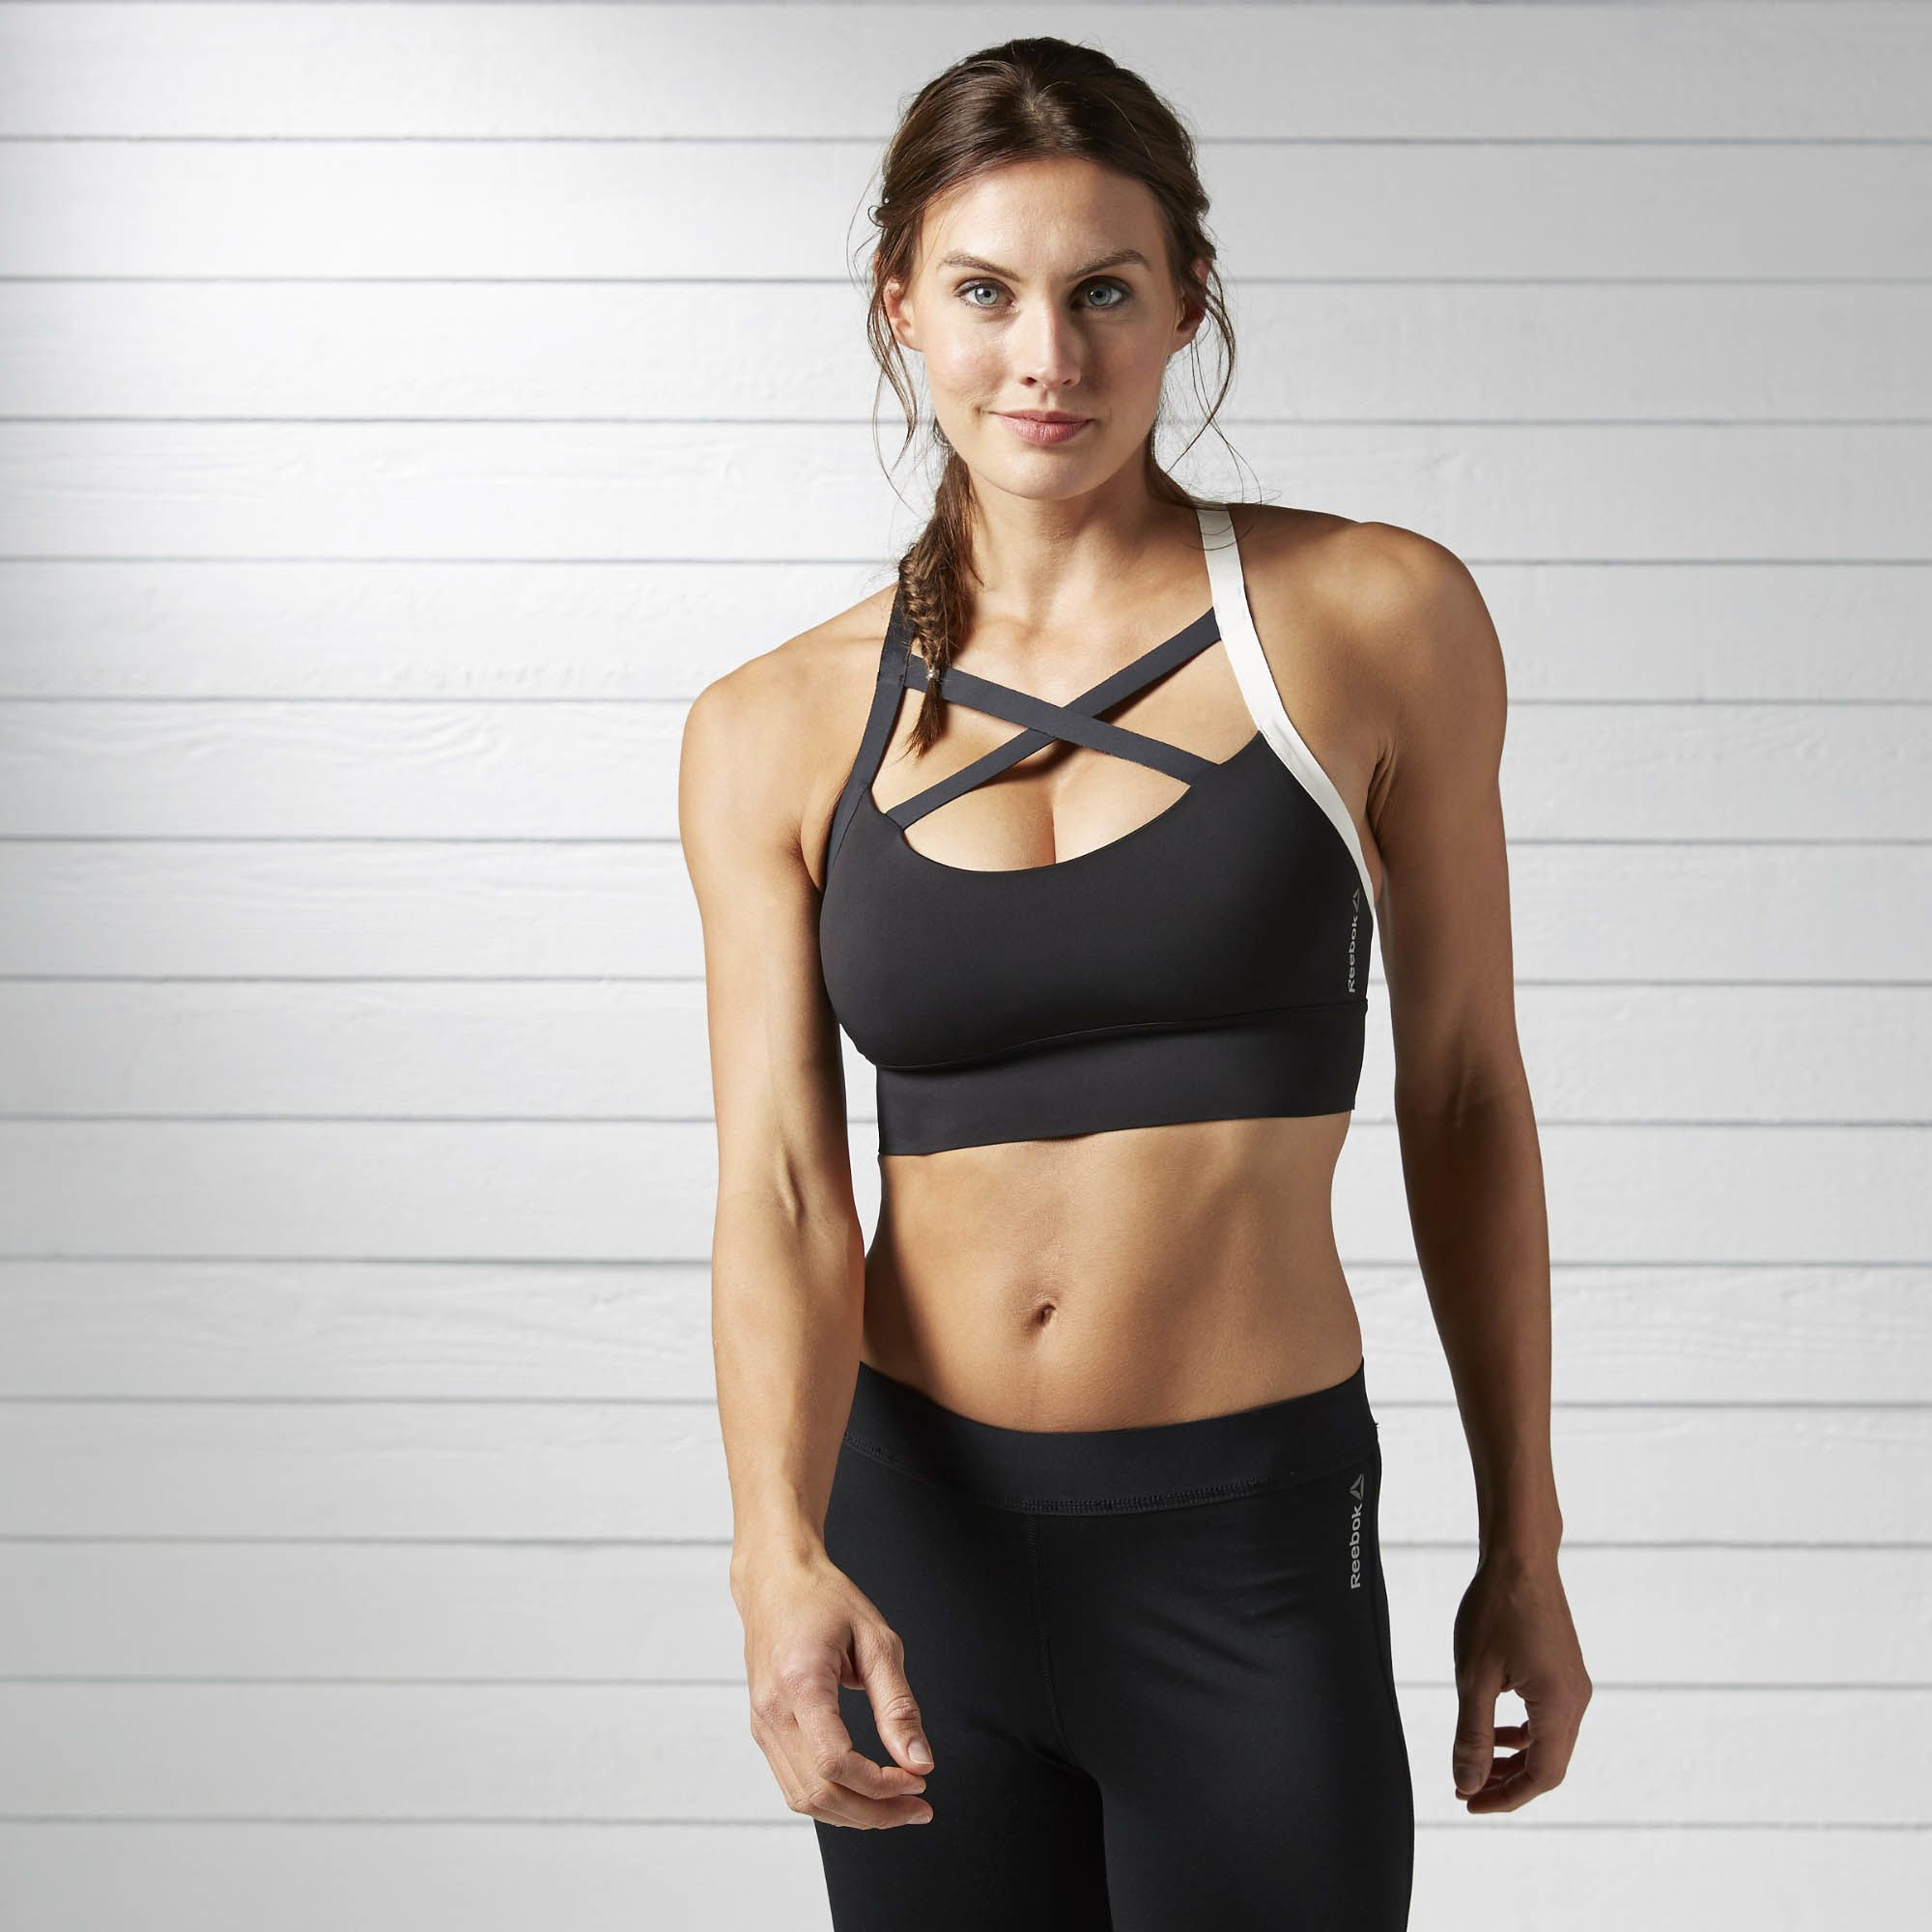 d4b89e1f7f057 Cardio Padded Strappy Sports Bra